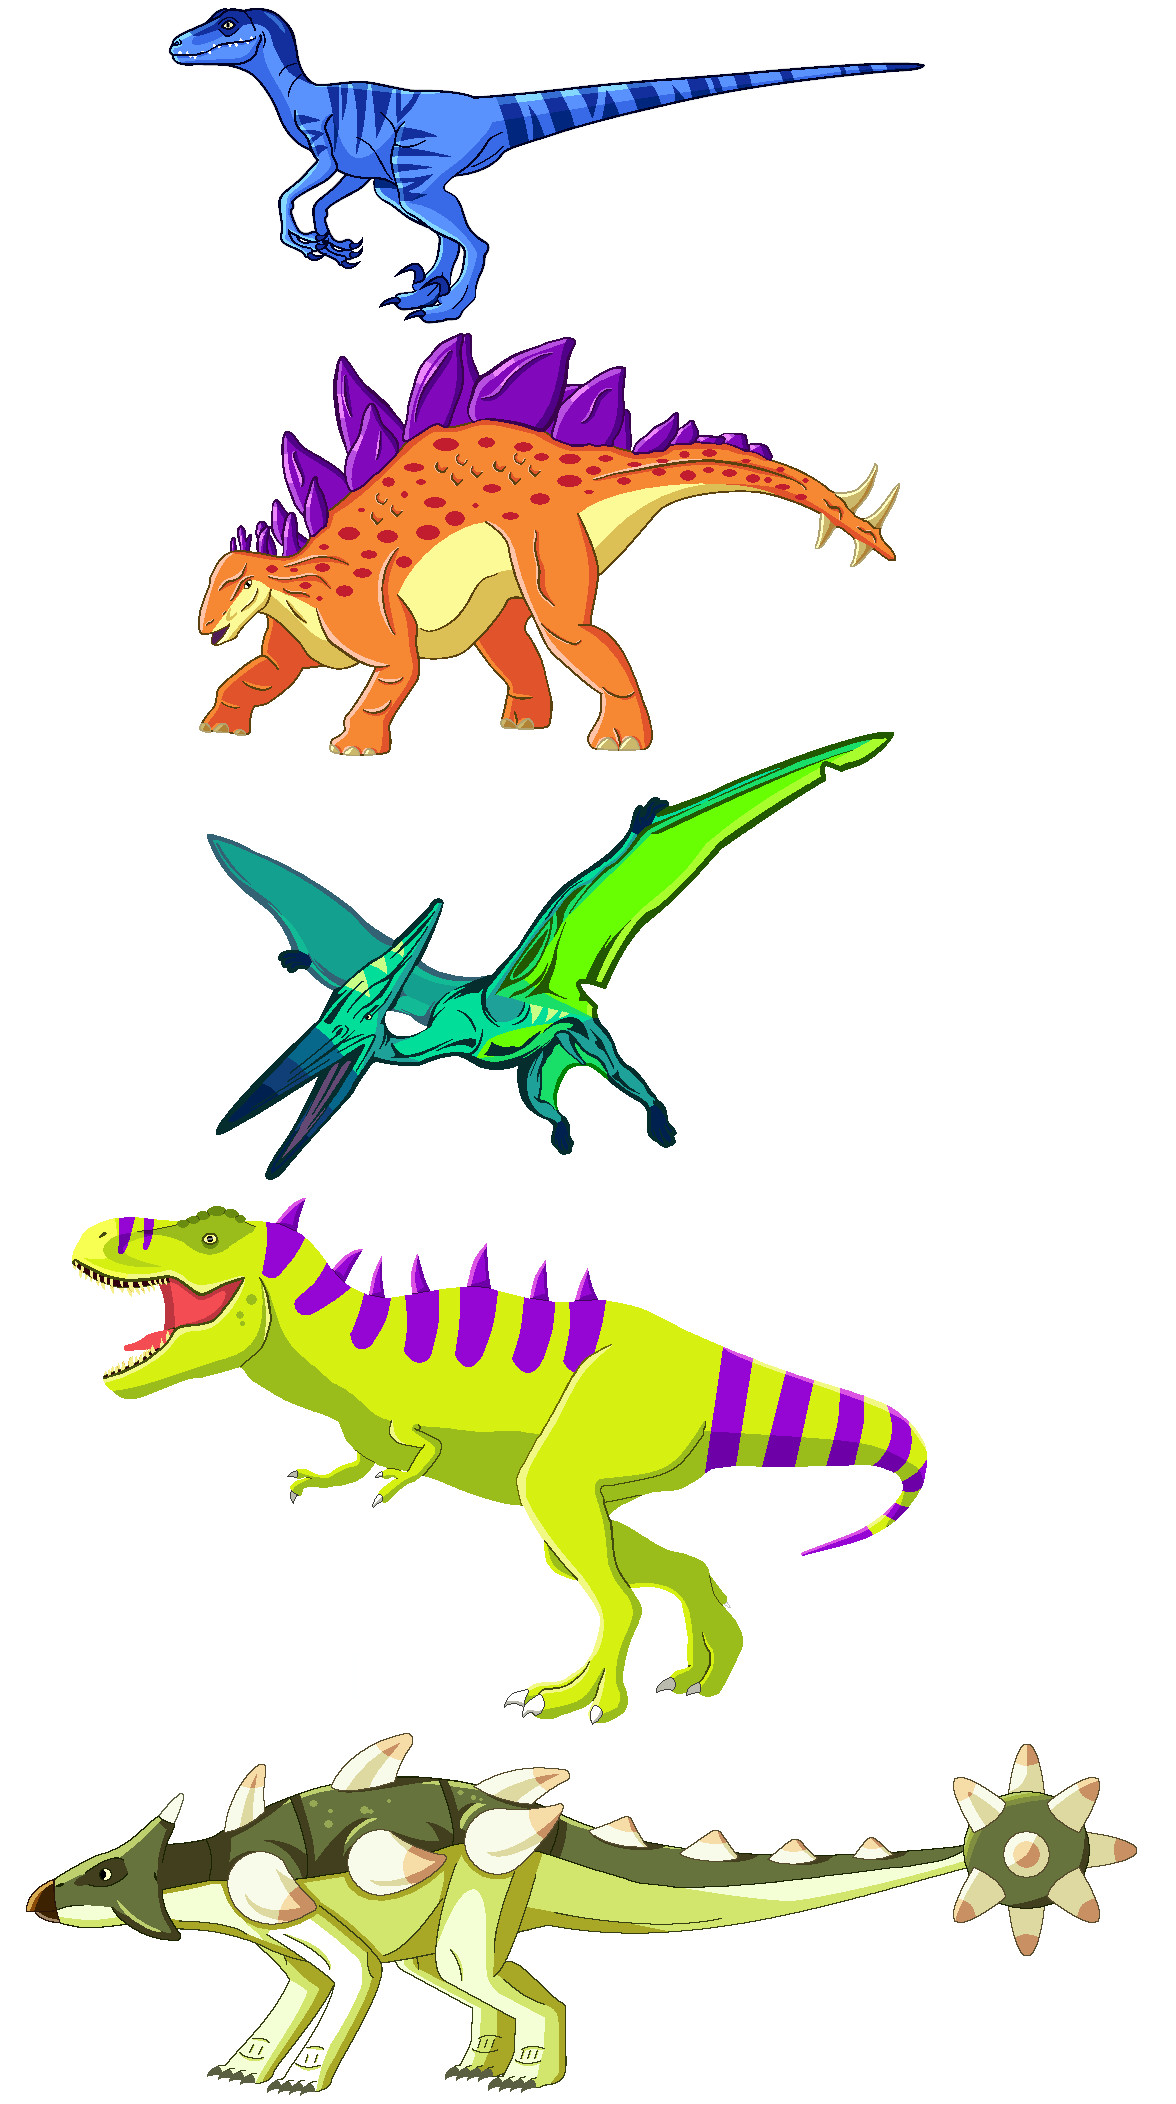 Dinosaurios Reales By Giselleriv2002 On Deviantart Dinosaurs are a diverse group of reptiles of the clade dinosauria. dinosaurios reales by giselleriv2002 on